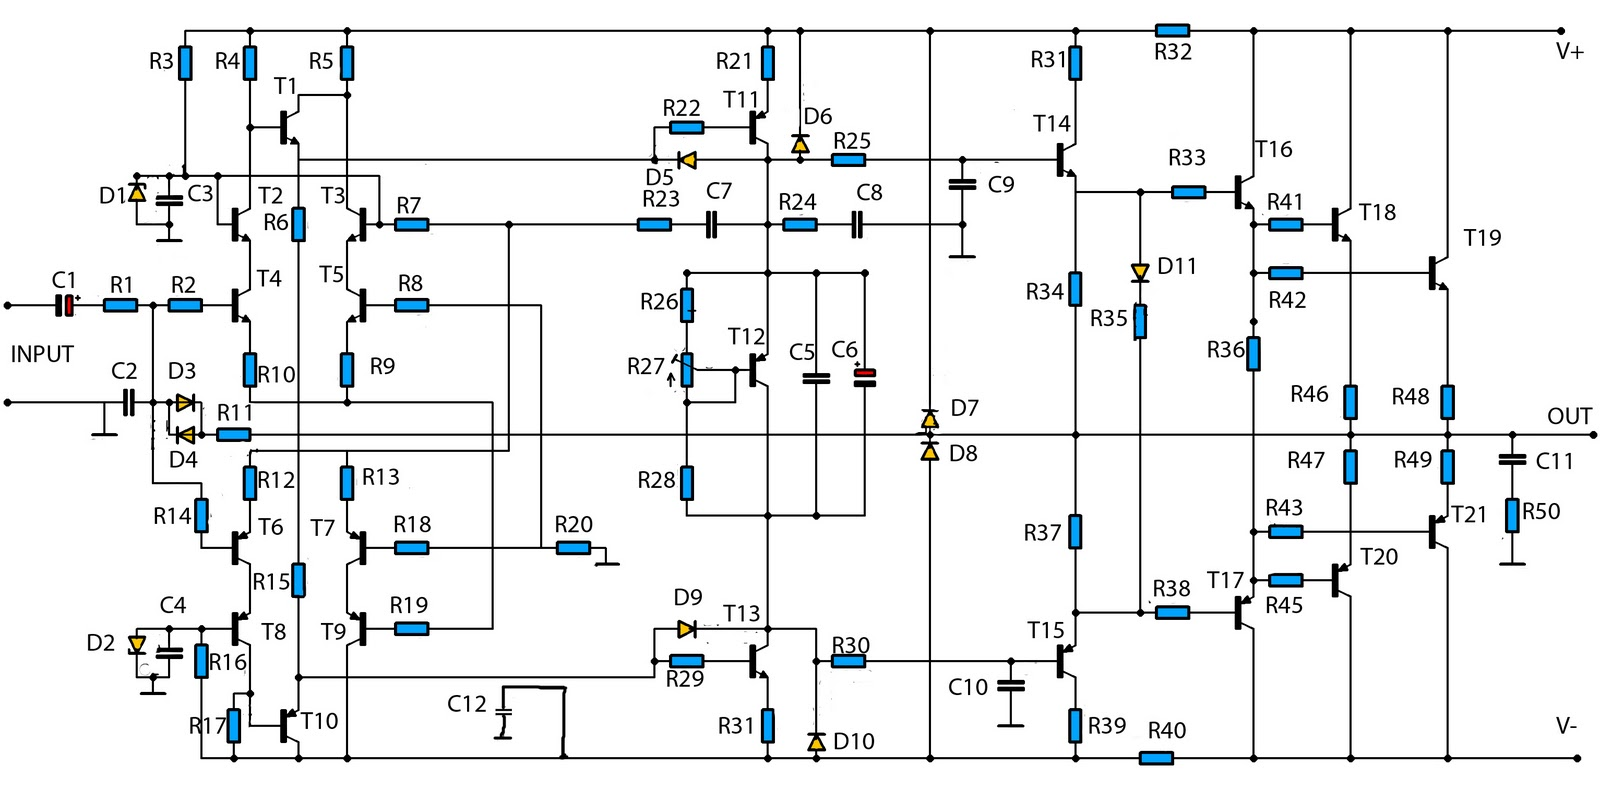 Circuit Schematic Diagram :